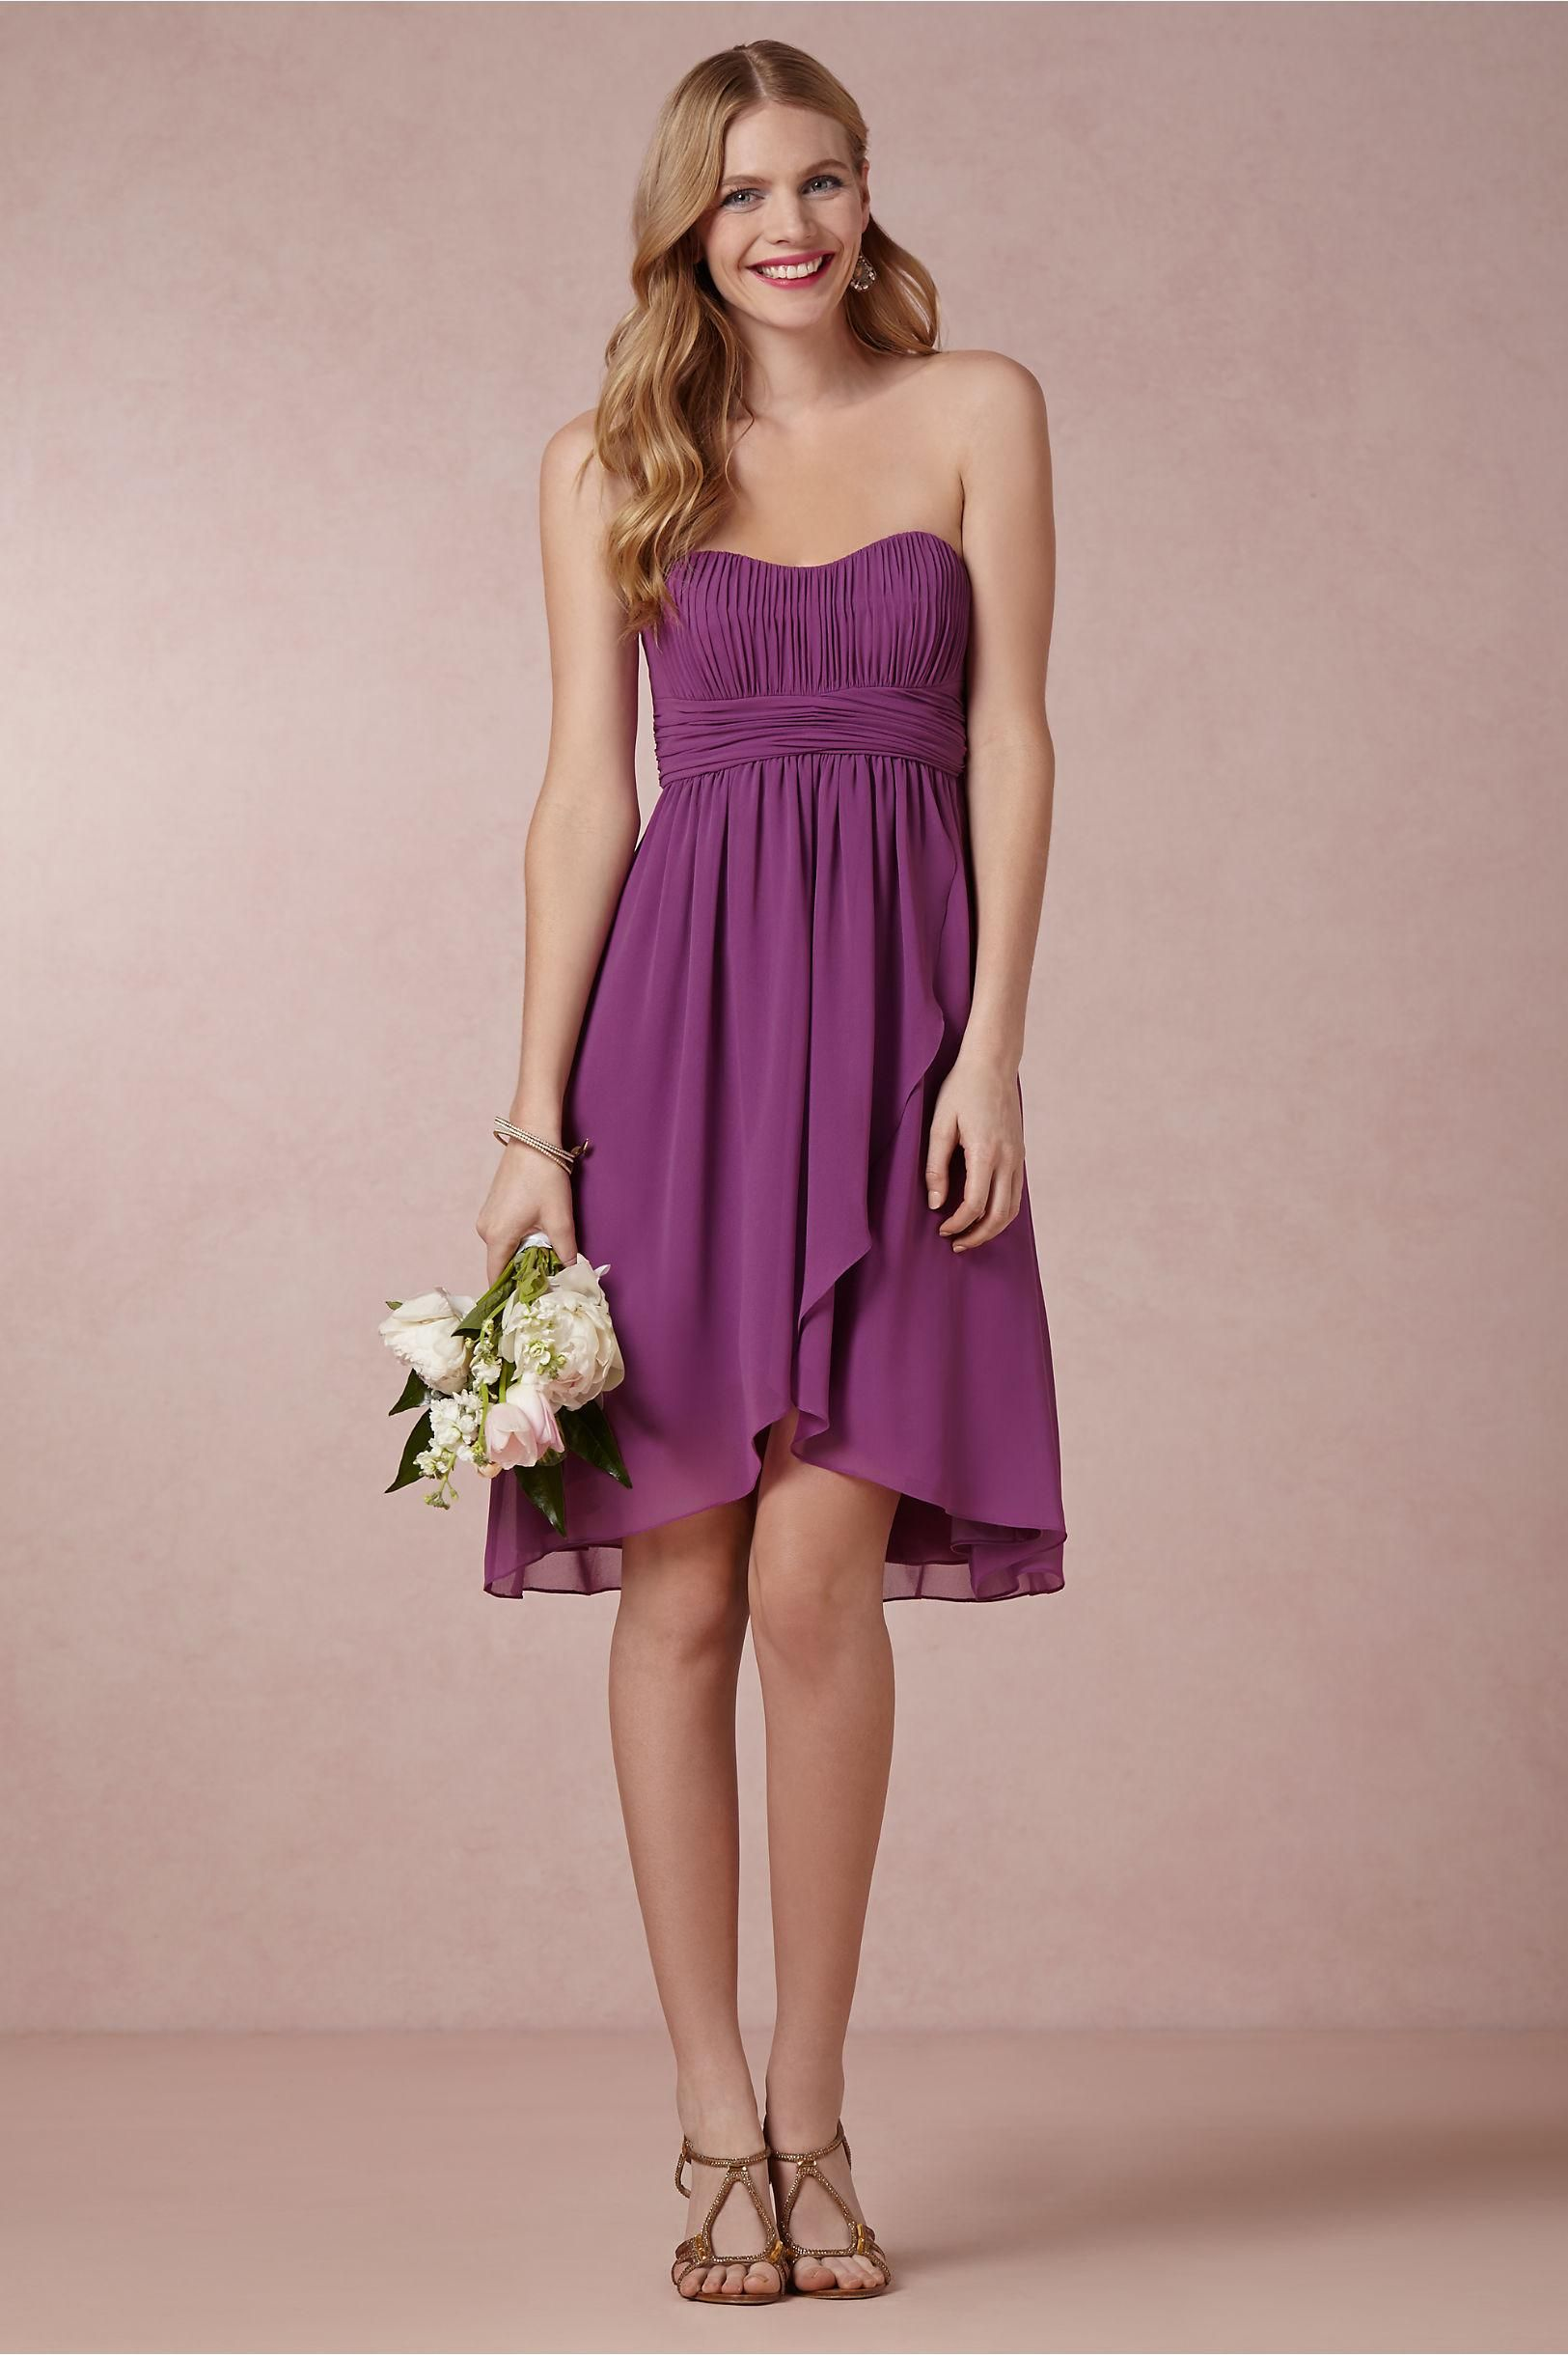 style | boysenberry (and dare we say radiantly purple?) bridesmaid ...